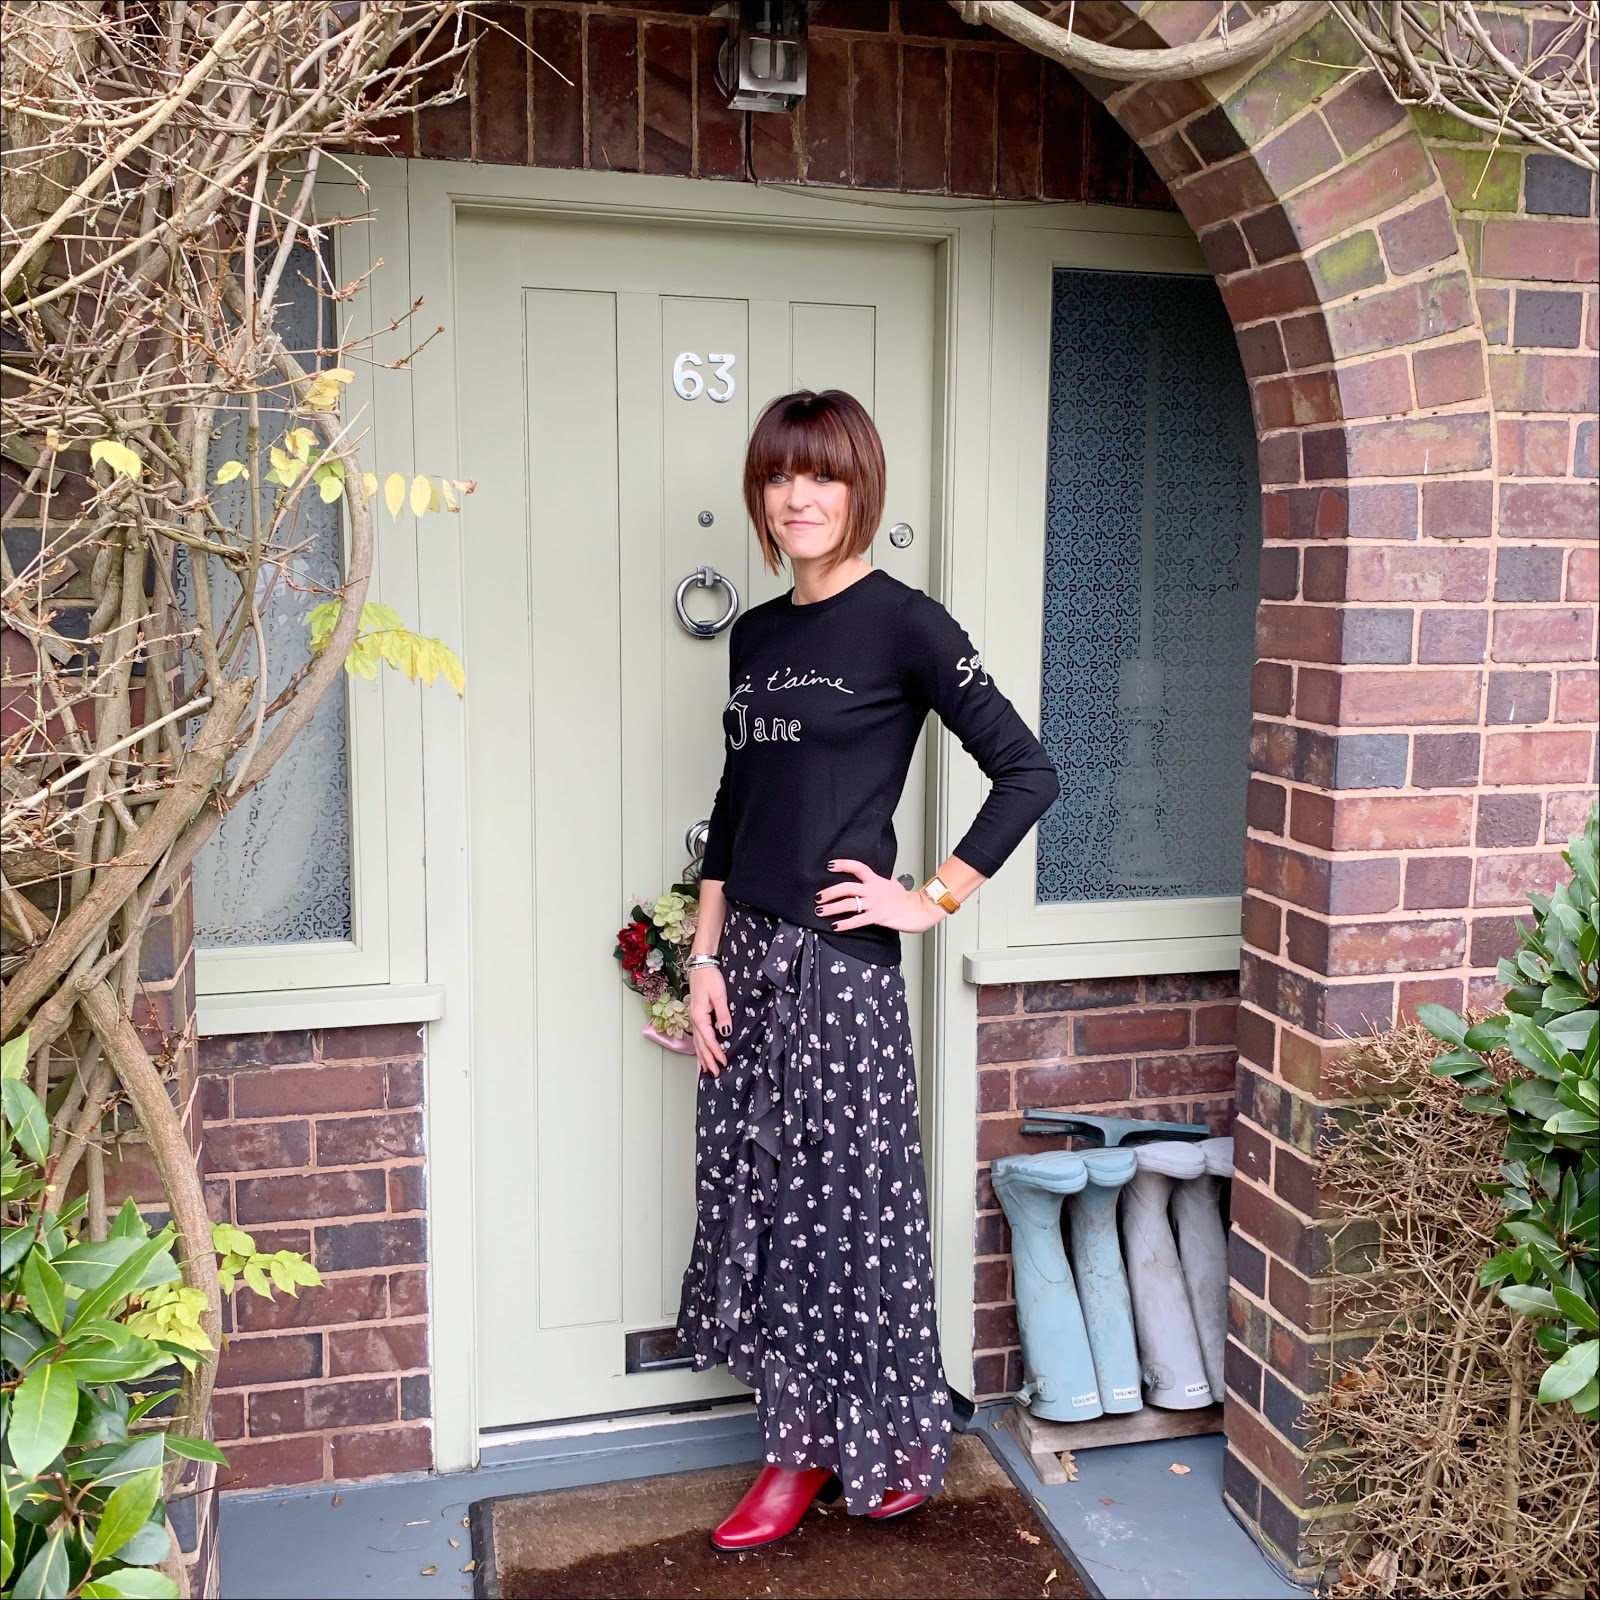 my midlife fashion, bella freud je t'aime jane merino wool sweater, ganni tilden floral print mesh midi wrap skirt, jones the bootmaker harriet leather ankle boot